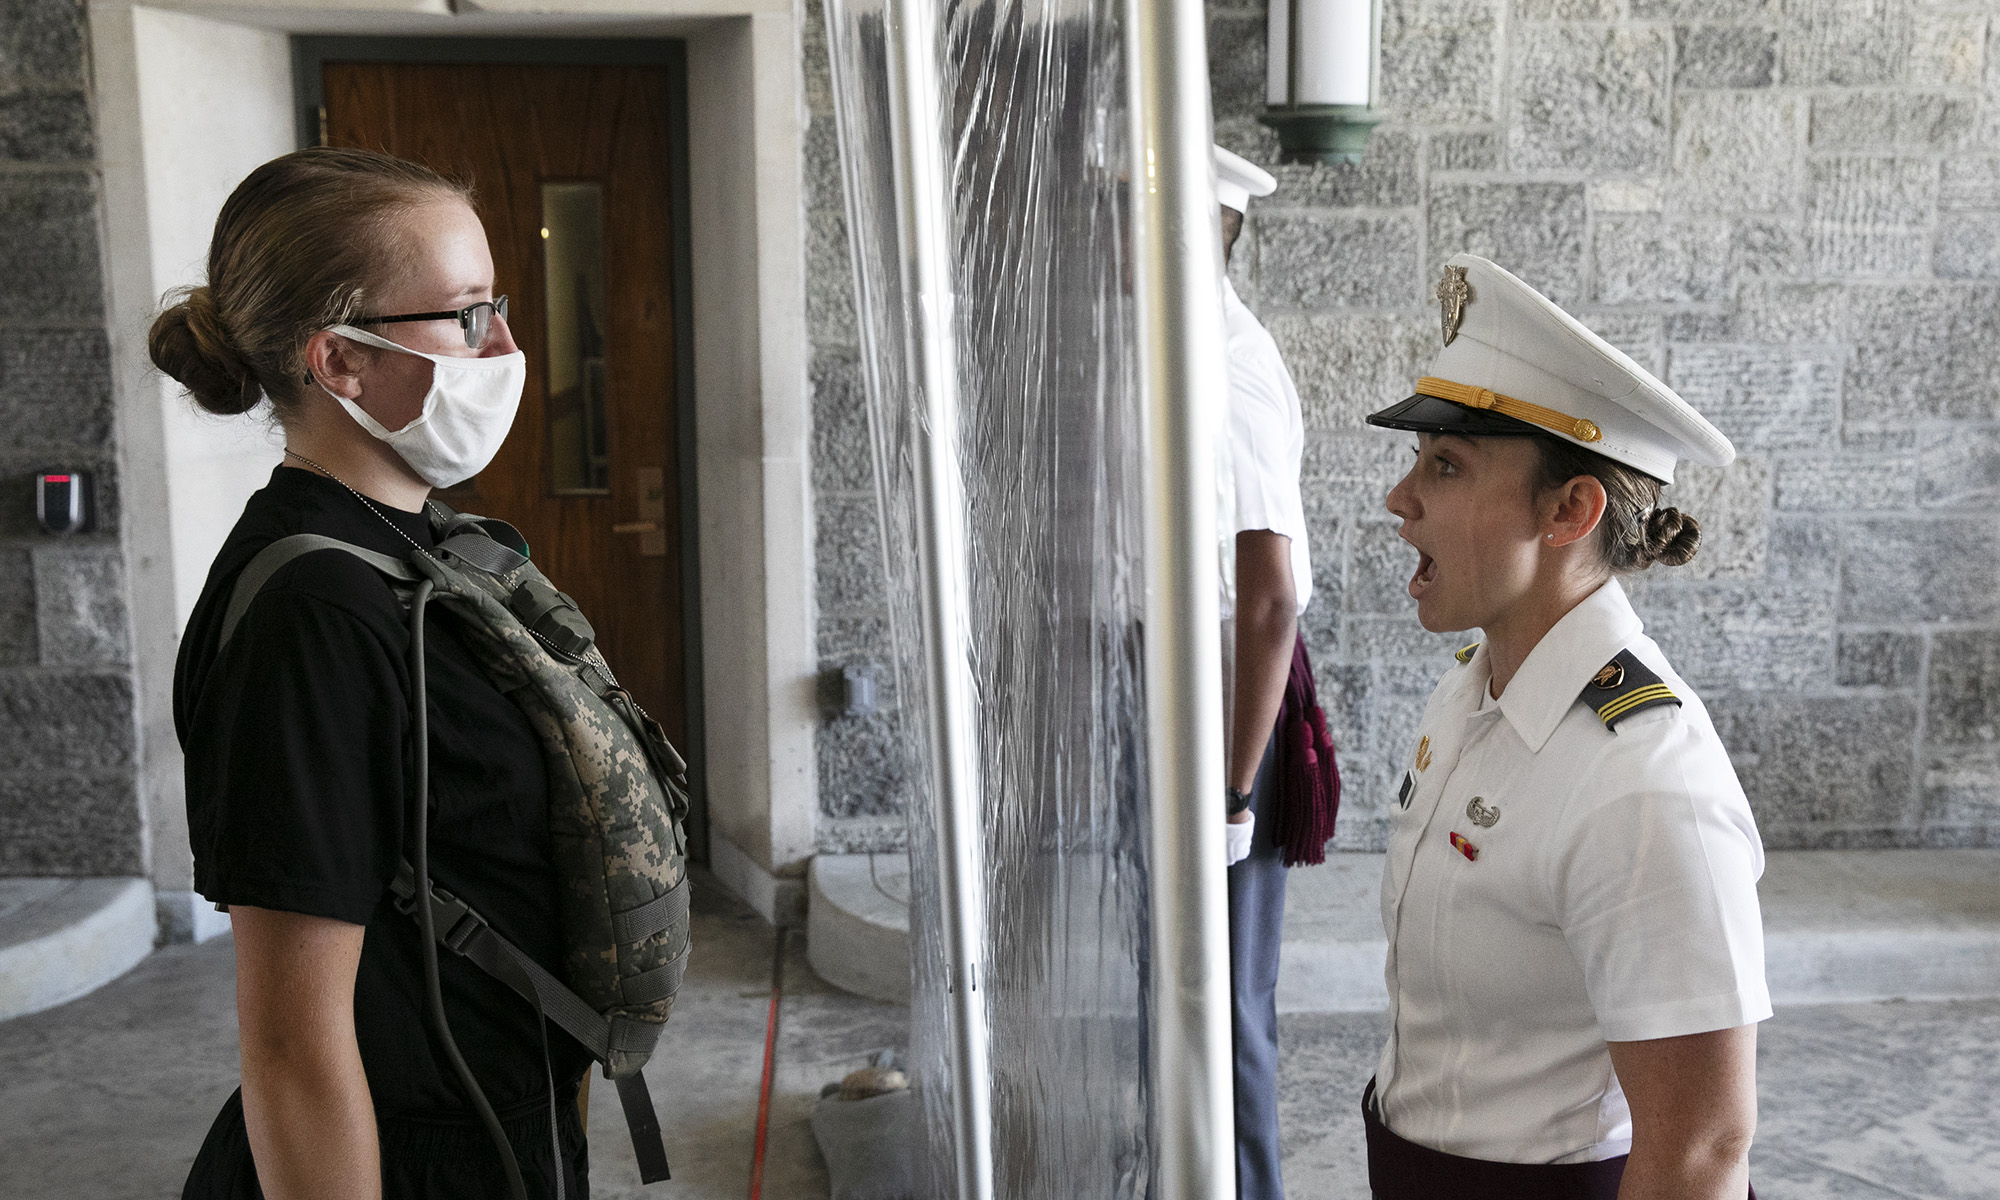 A new cadet, left, listens as First Class Cadet Madison Teague, right, yells commands as a plastic screen separates them at the U.S. Military Academy on July 13, 2020, in West Point, N.Y. The Army is welcoming more than 1,200 candidates from every state. Candidates will be COVID-19 tested immediately upon arrival, wear masks, and practice social distancing. (Mark Lennihan/AP)